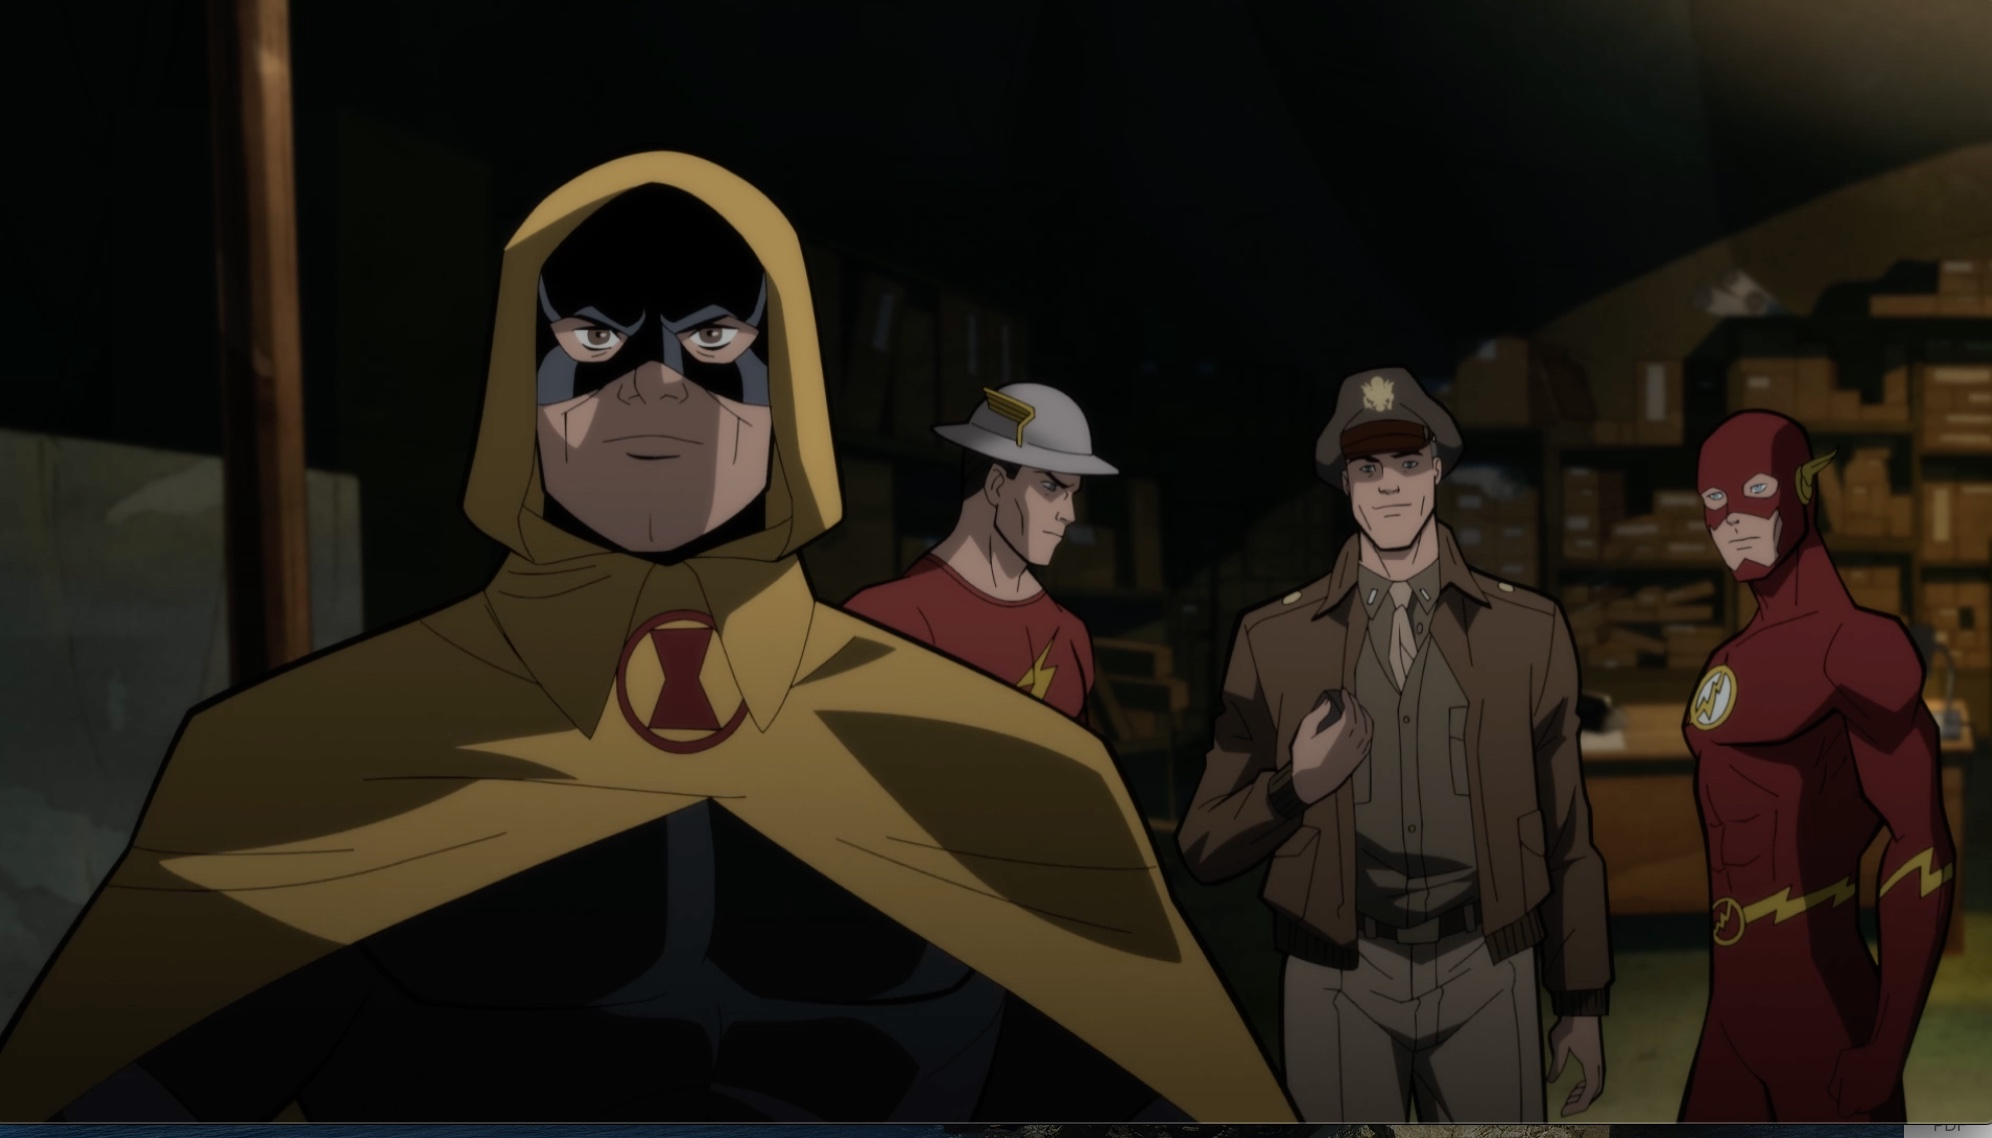 Image de Hourman, Jay Garrick, Steve Trevor et The Flash dans le film d'animation Justice Society : World War II